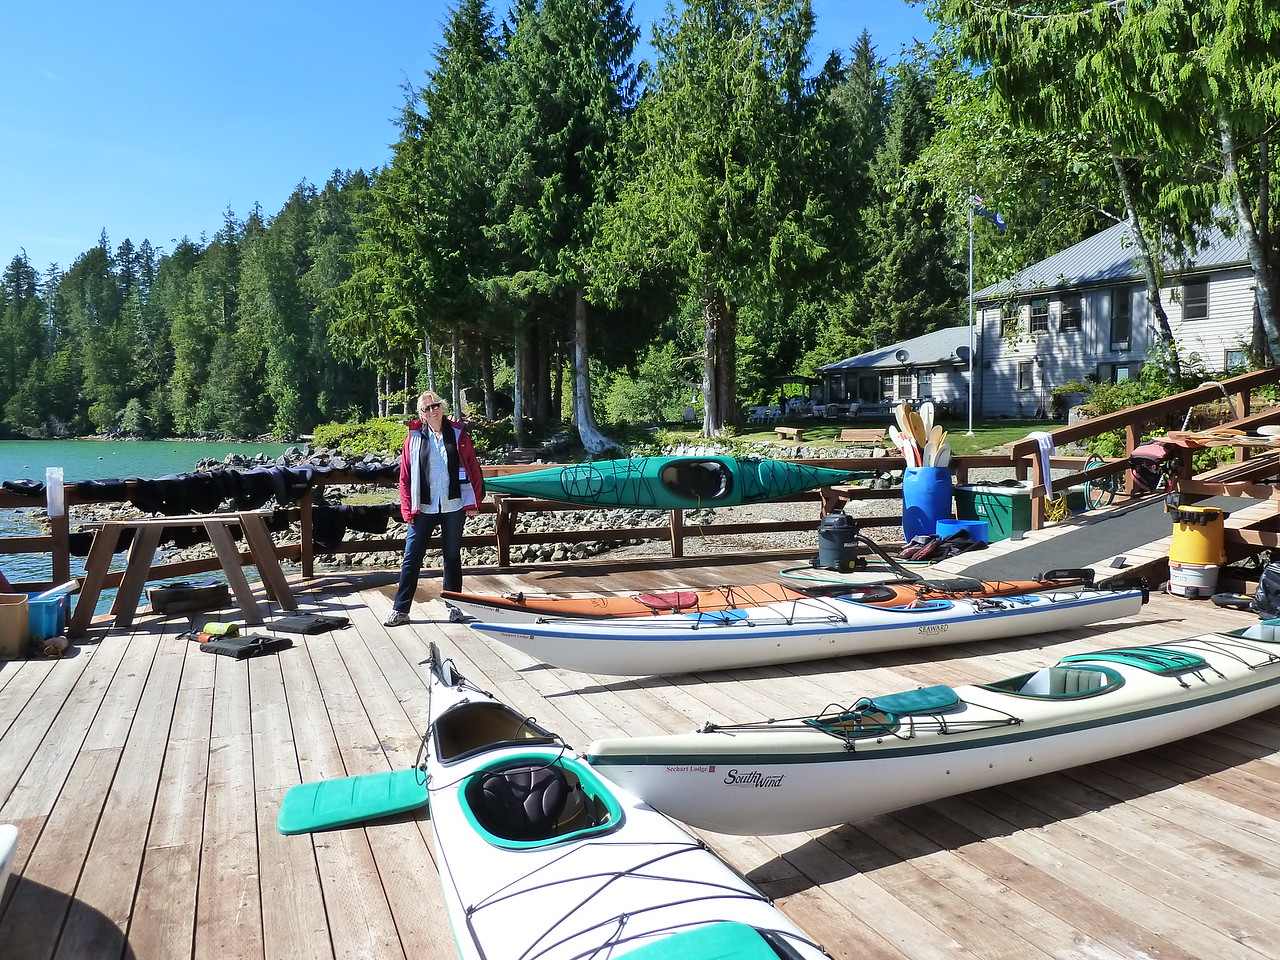 Our kayaking destination, Sechart Lodge in the Broken Islands on Vancouver Island, Canada.